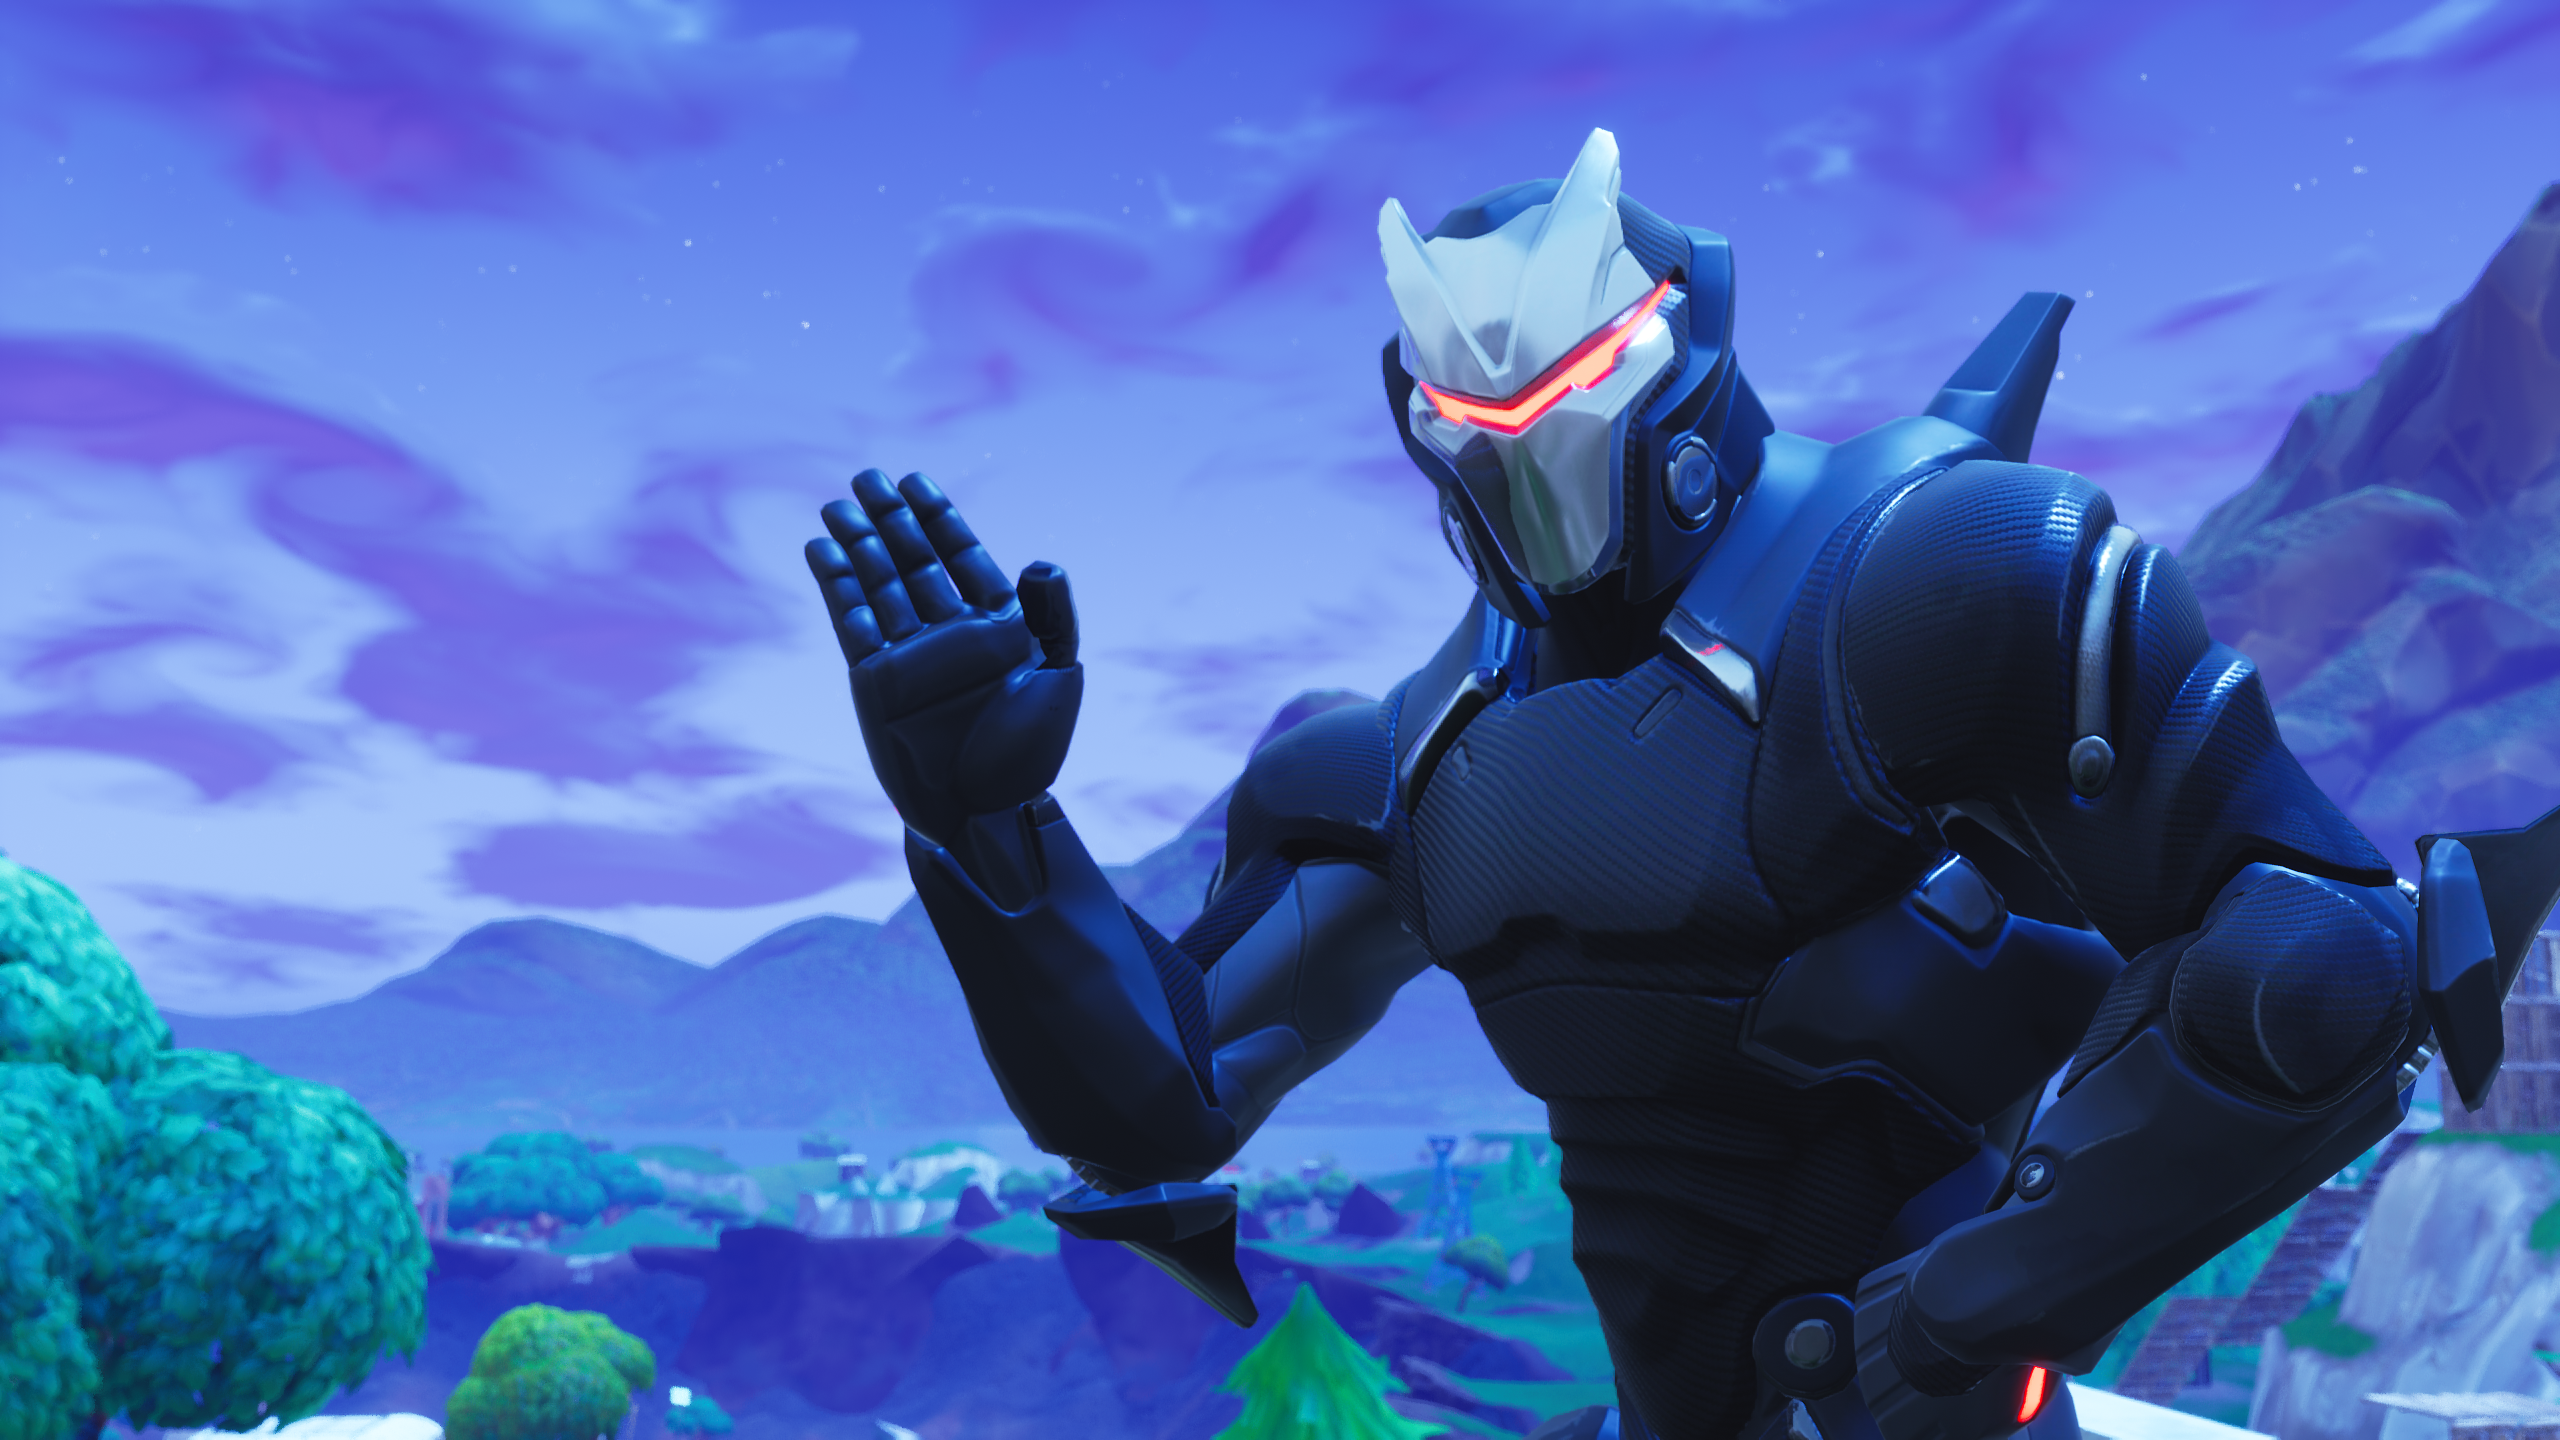 Fortnite Omega Wallpaper Hd обои фон 2560x1440 Id